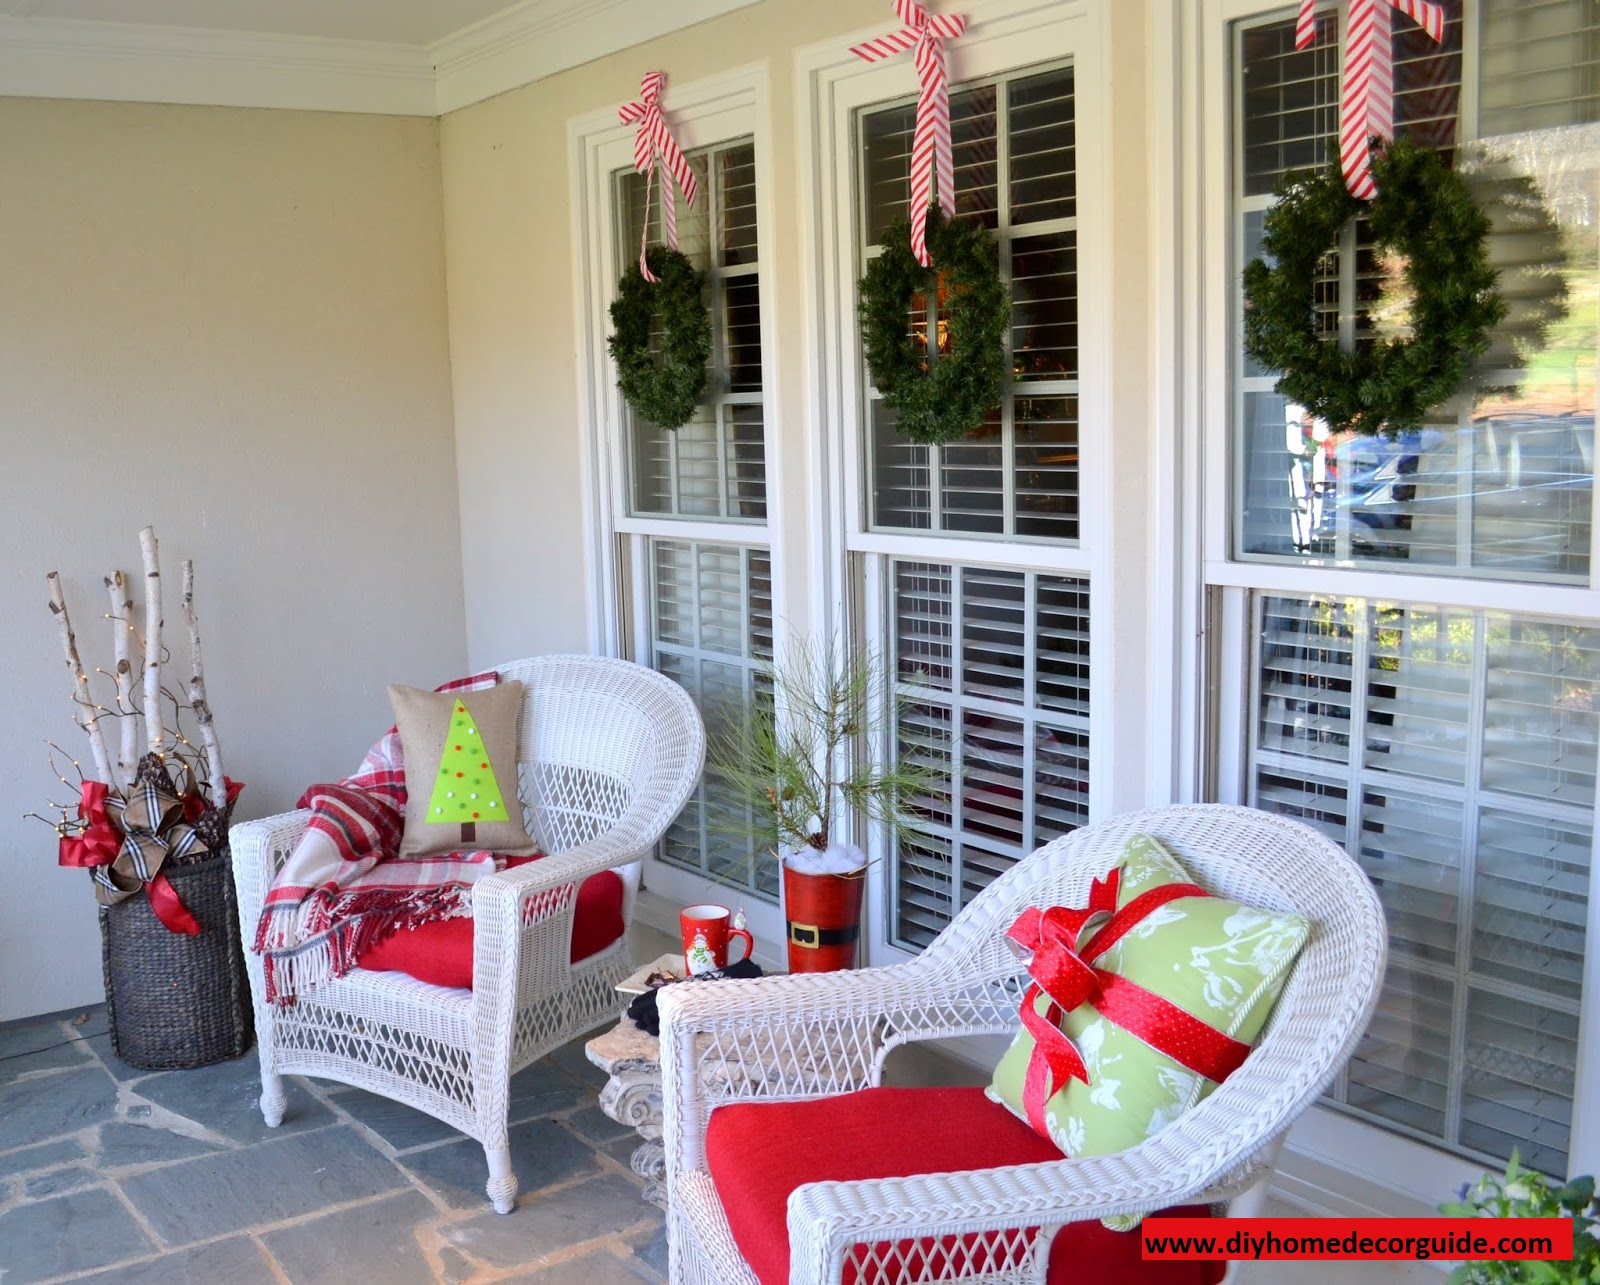 DIY Outdoor Christmas Decorations Ideas 2014